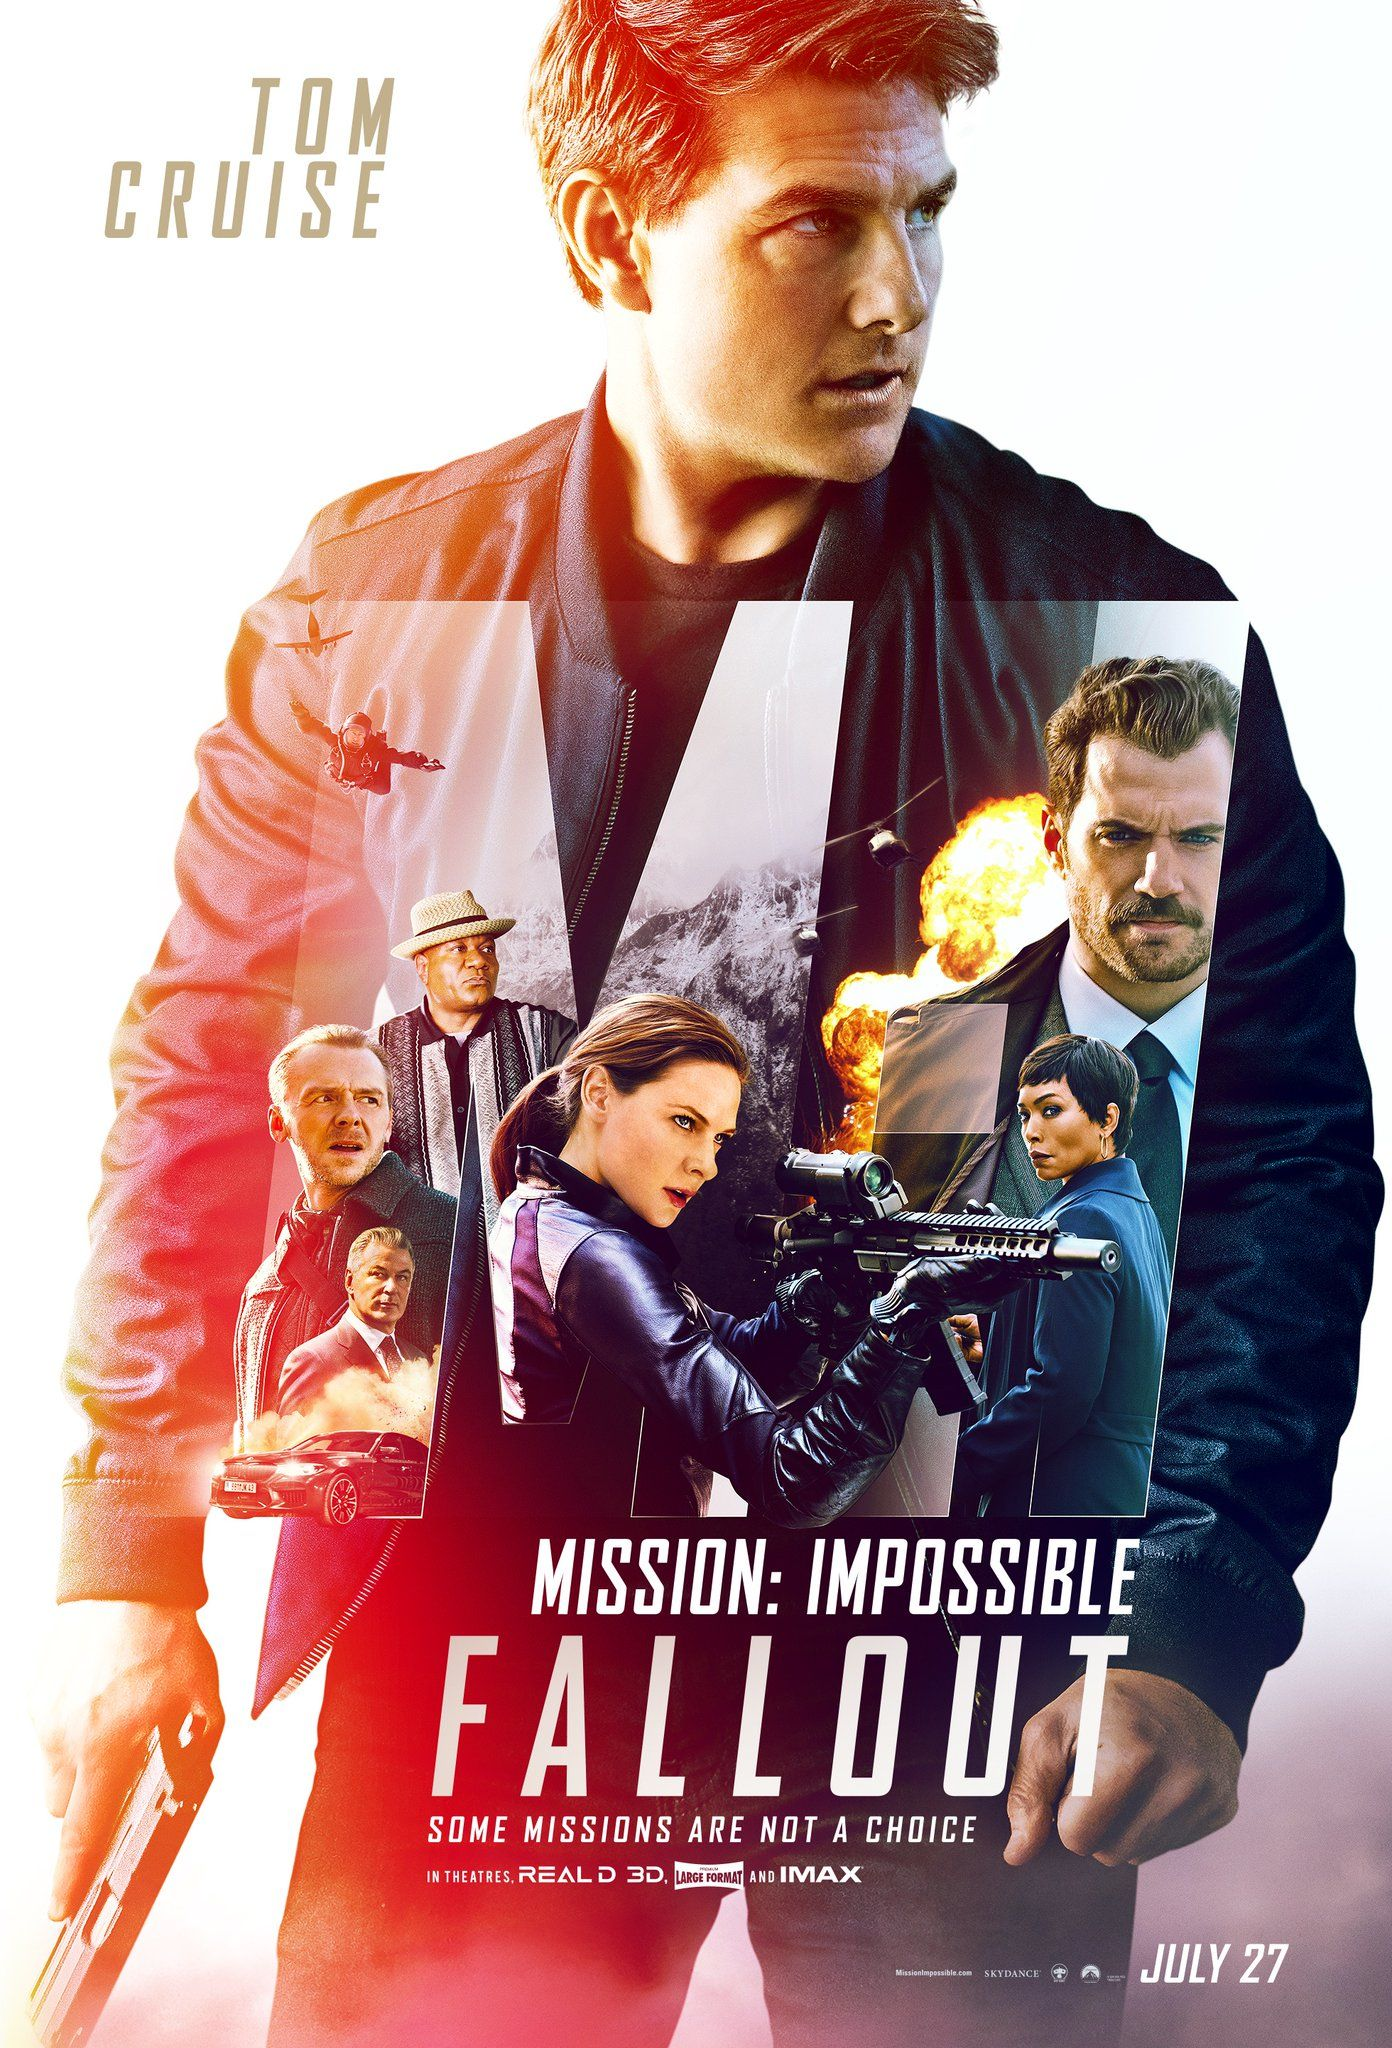 Mission Impossible 6 Fallout New Film Poster Https Teaser Trailer Com Movie Mission Impos Mission Impossible Fallout Fallout Movie Full Movies Online Free